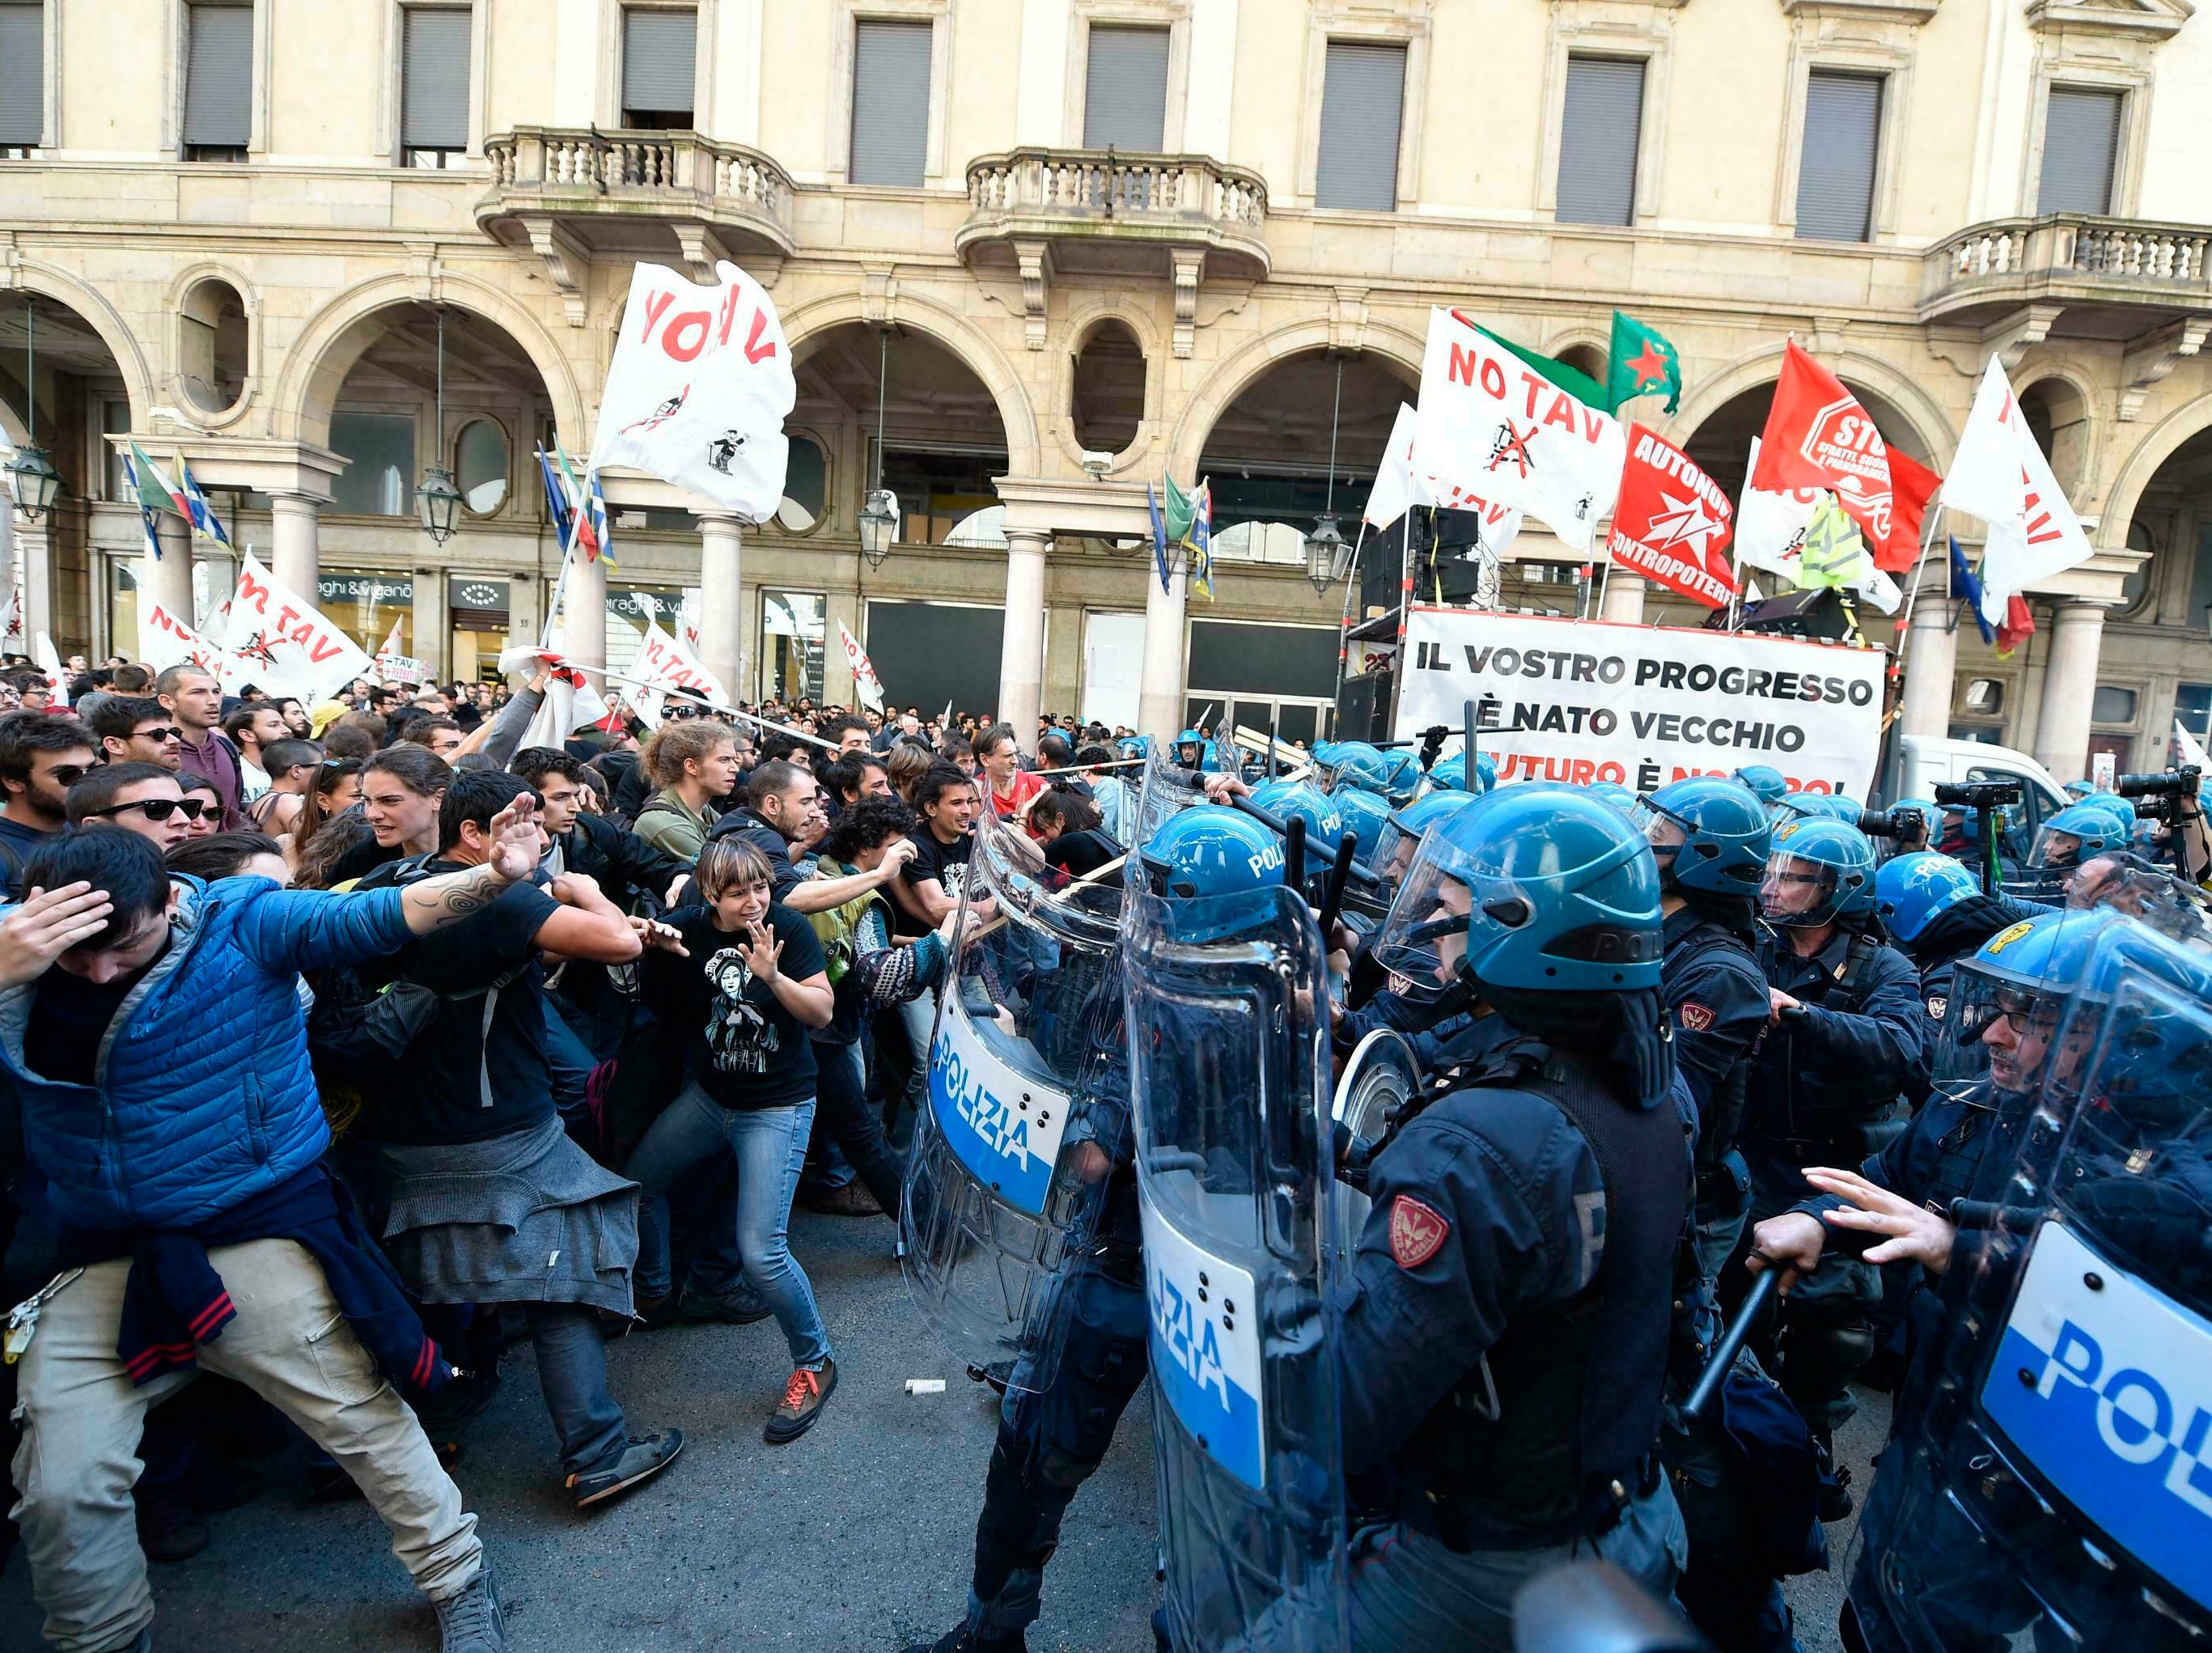 Demonstrators confront police officers as scuffles broke out during a May Day rally in Turin, Italy, Wednesday, May 1, 2019.